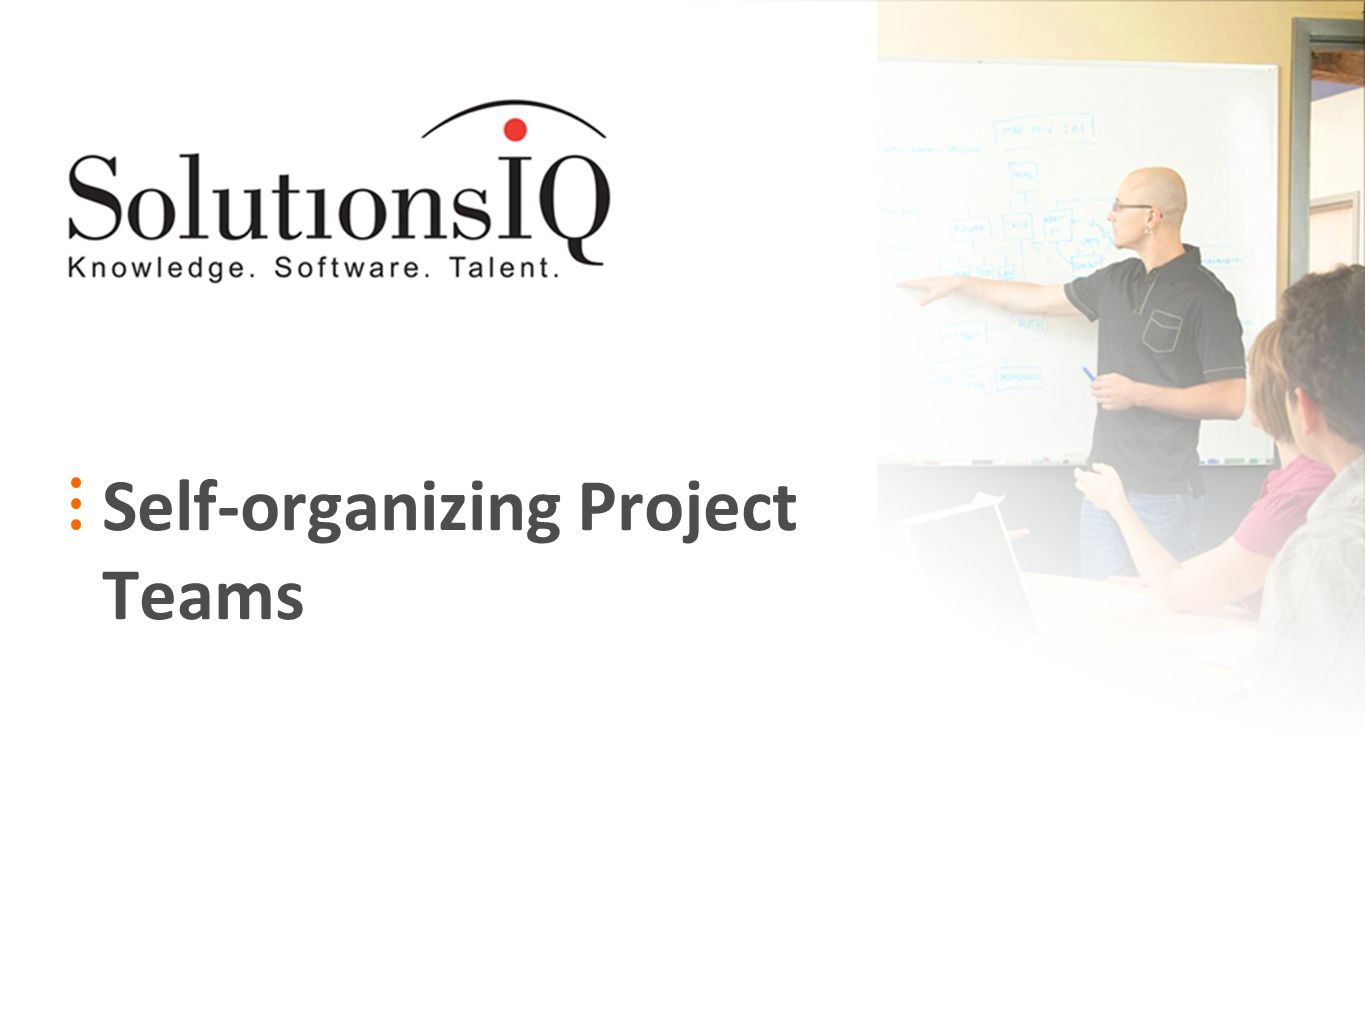 Self-organizing Project Teams